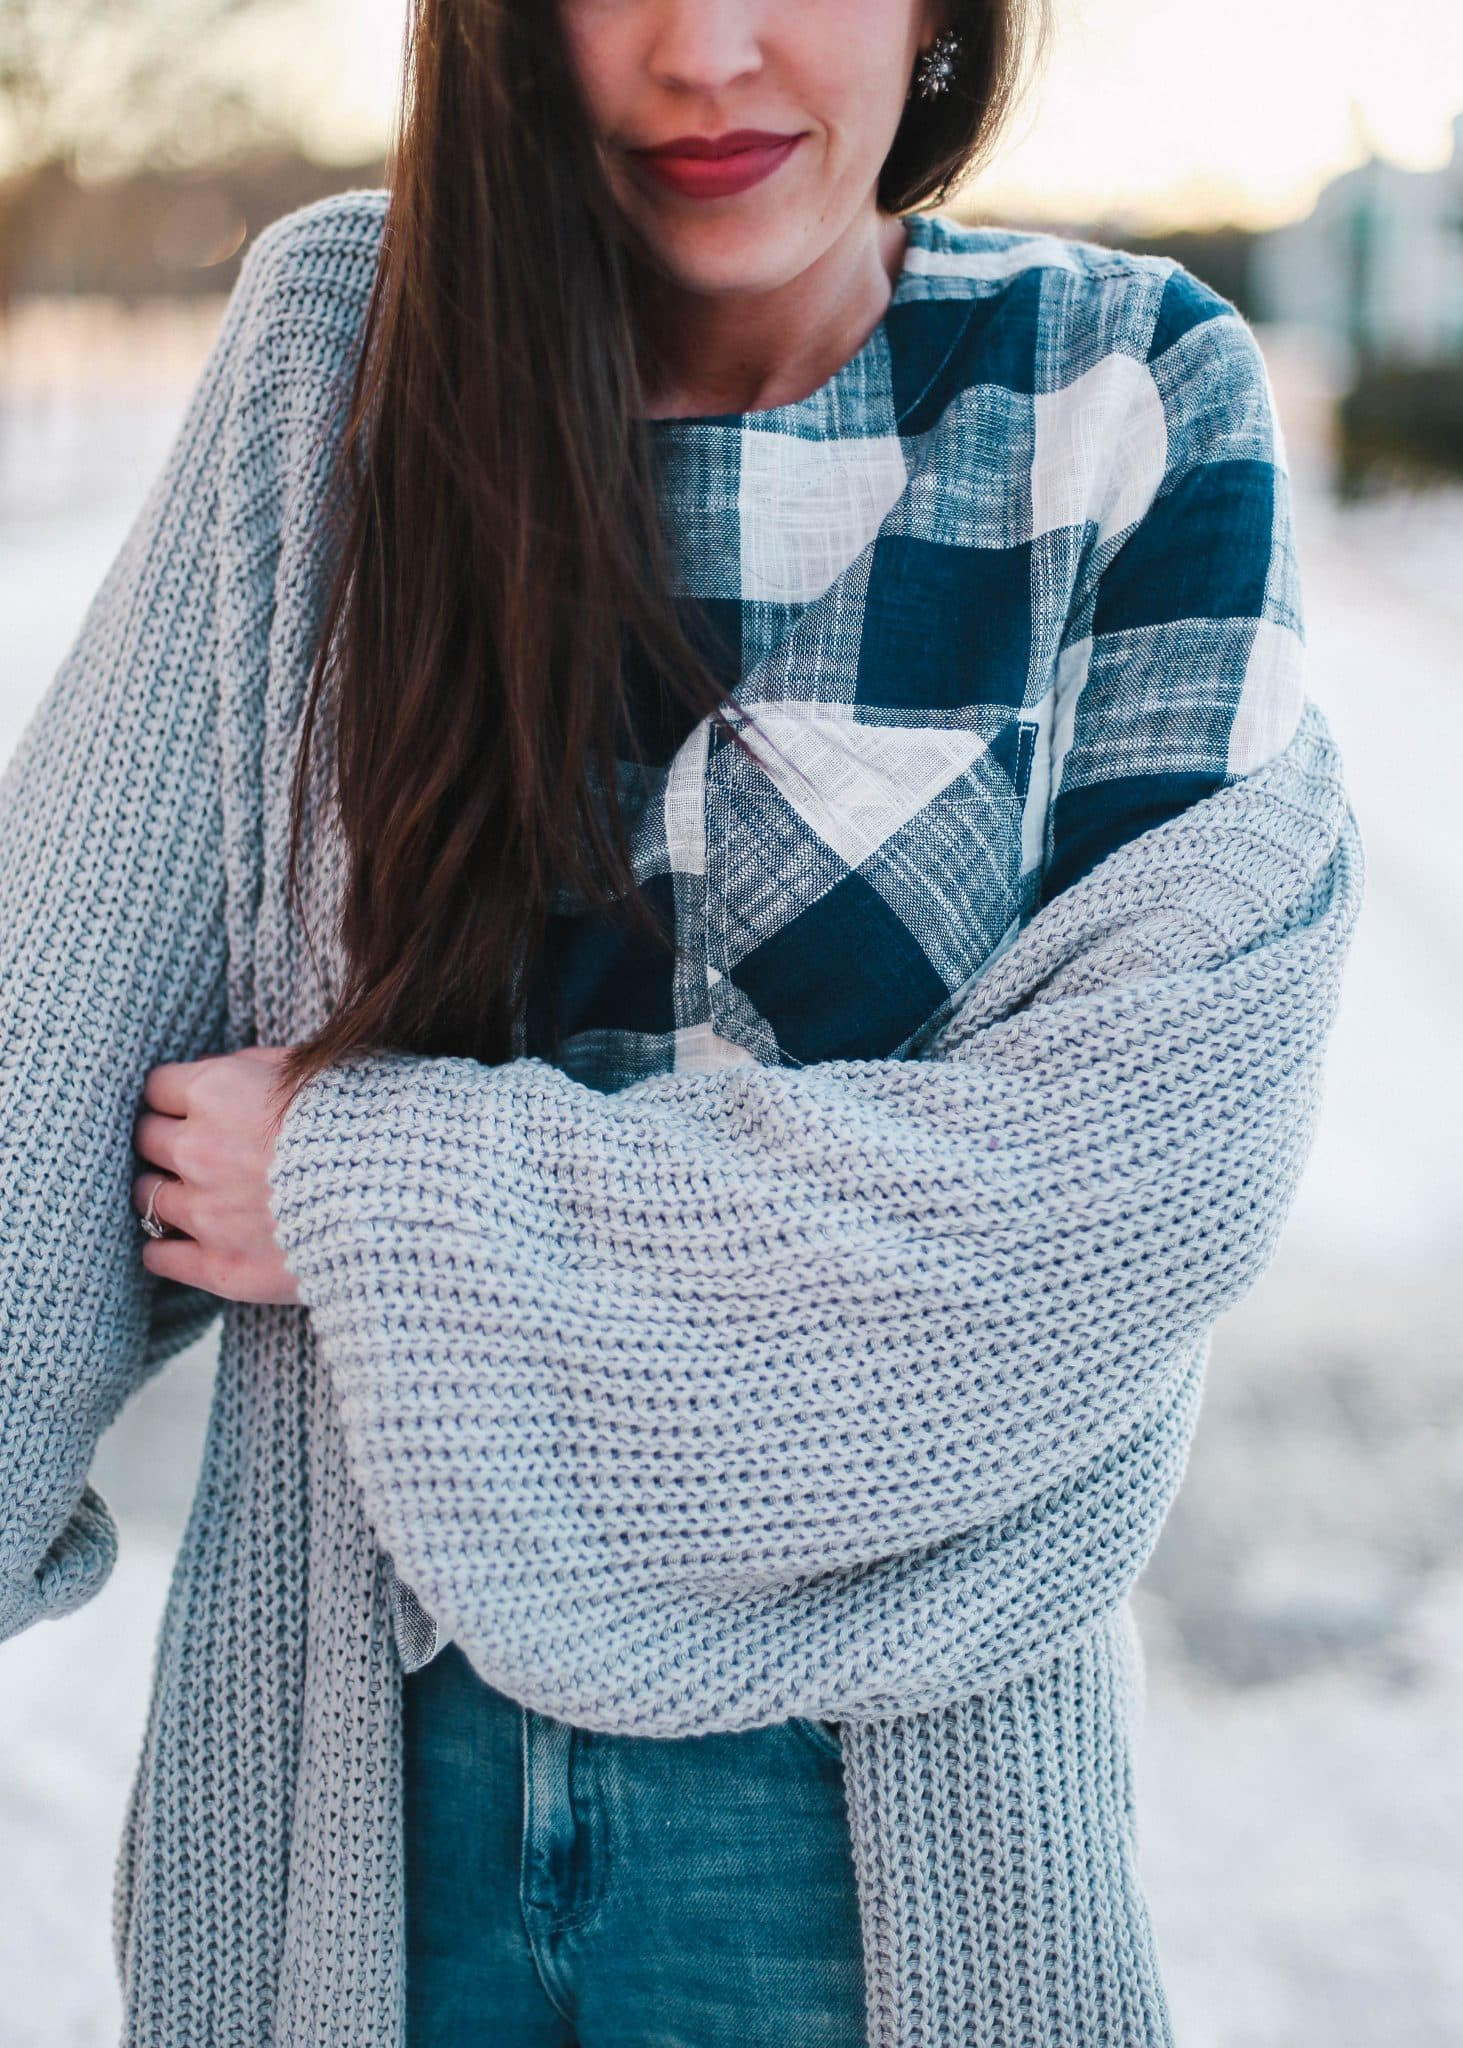 anthropologie gingham top, pretty in the pines blog,lifestyle blog, fashion blog north carolina, grey long cardigan oversized, distressed denim